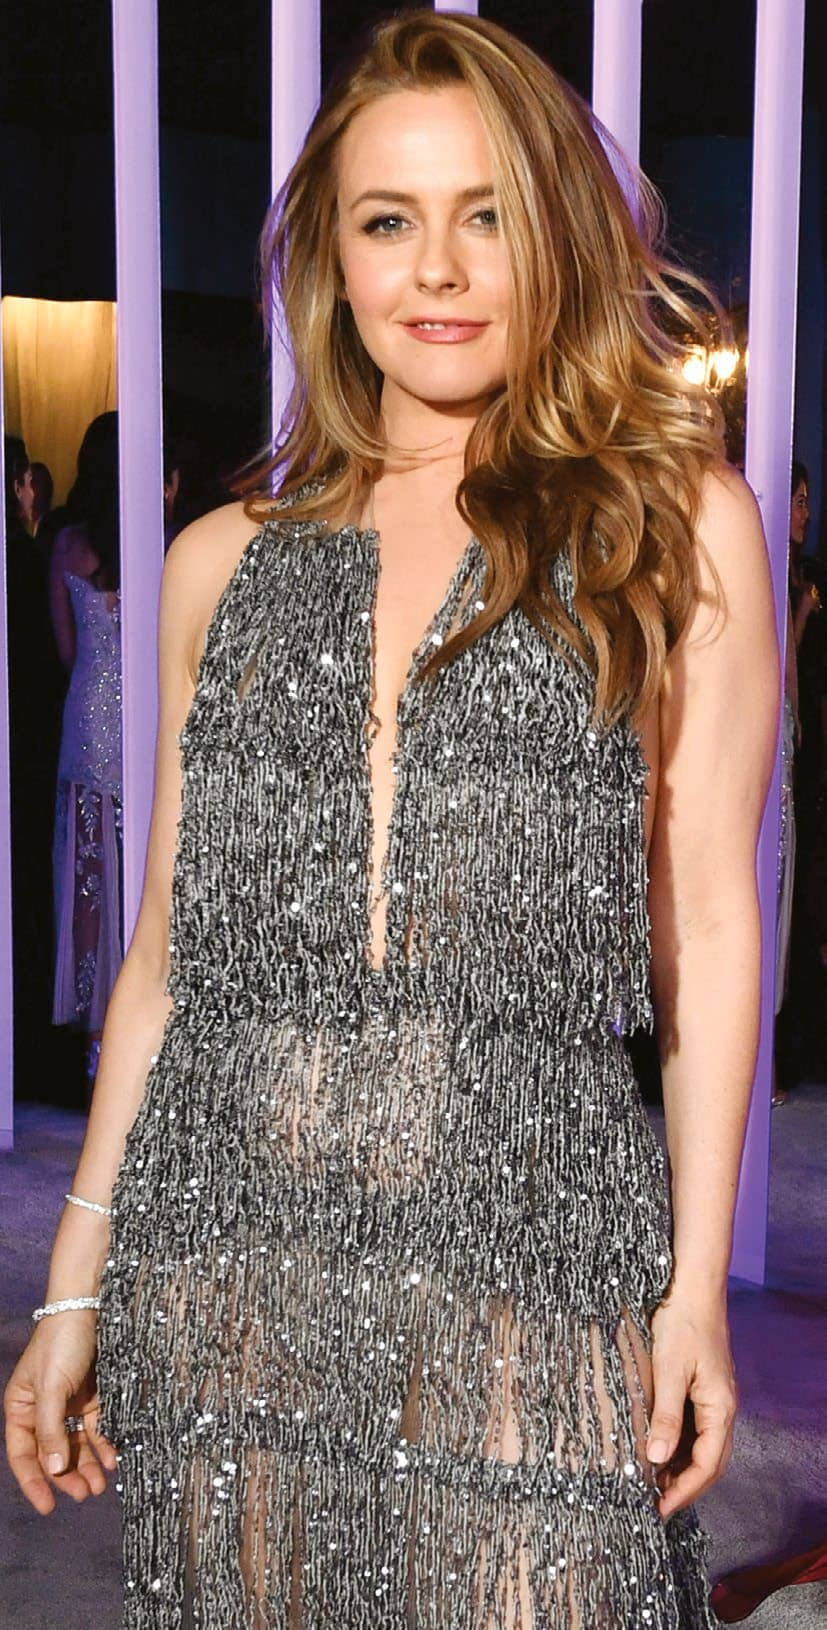 ALICIA SILVERSTONE: 'WE'RE ALL PERFECTLY IMPERFECT